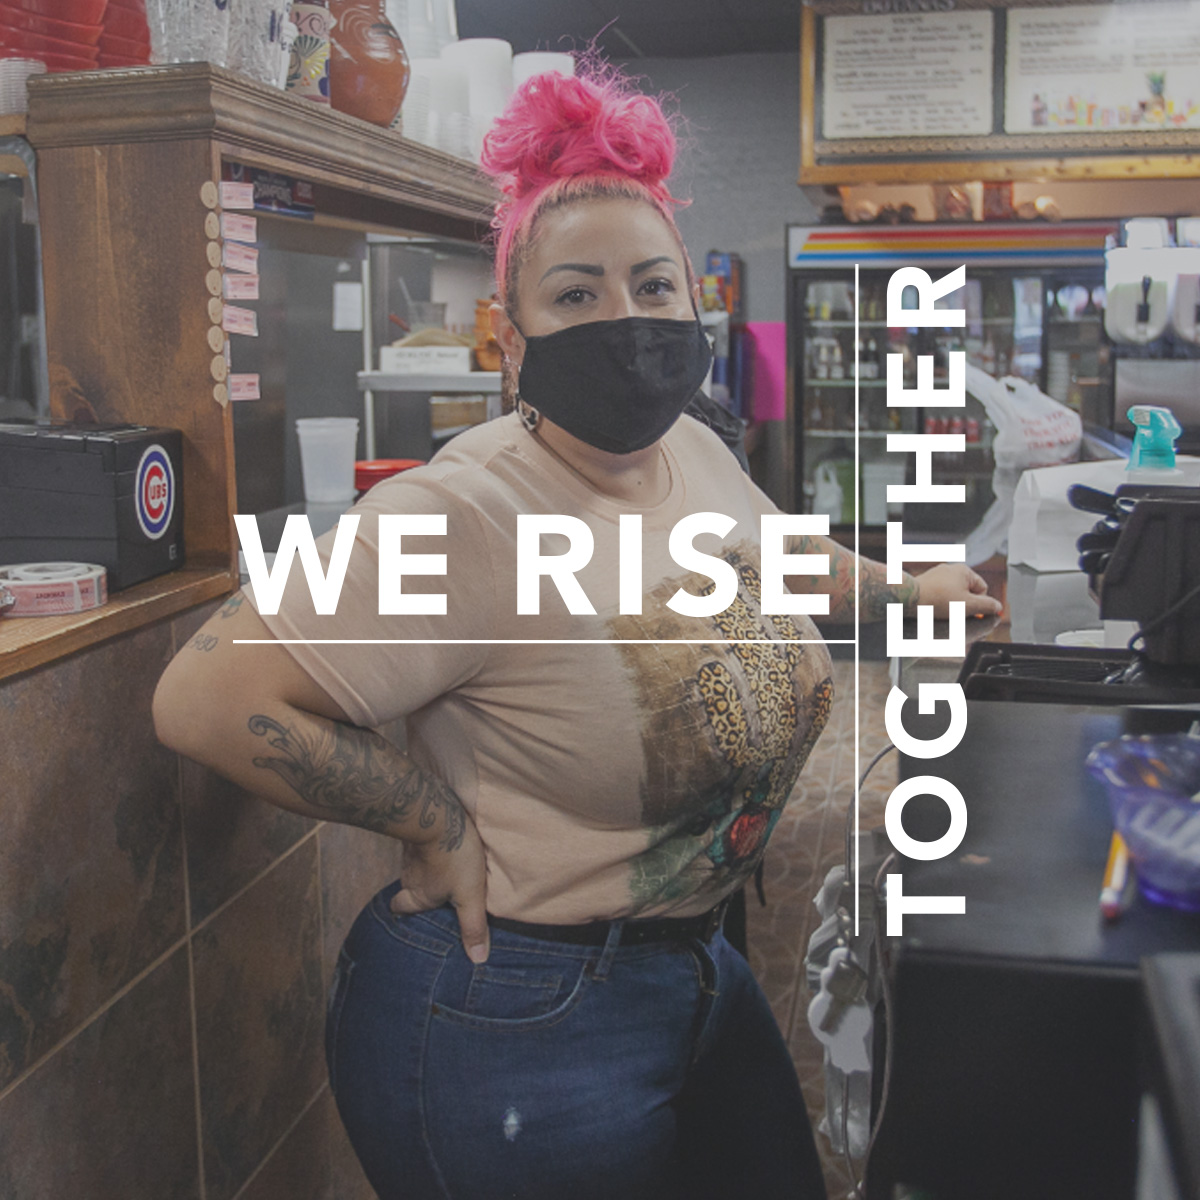 We rise together. Photo shows a woman with pink hair in a convenience store.